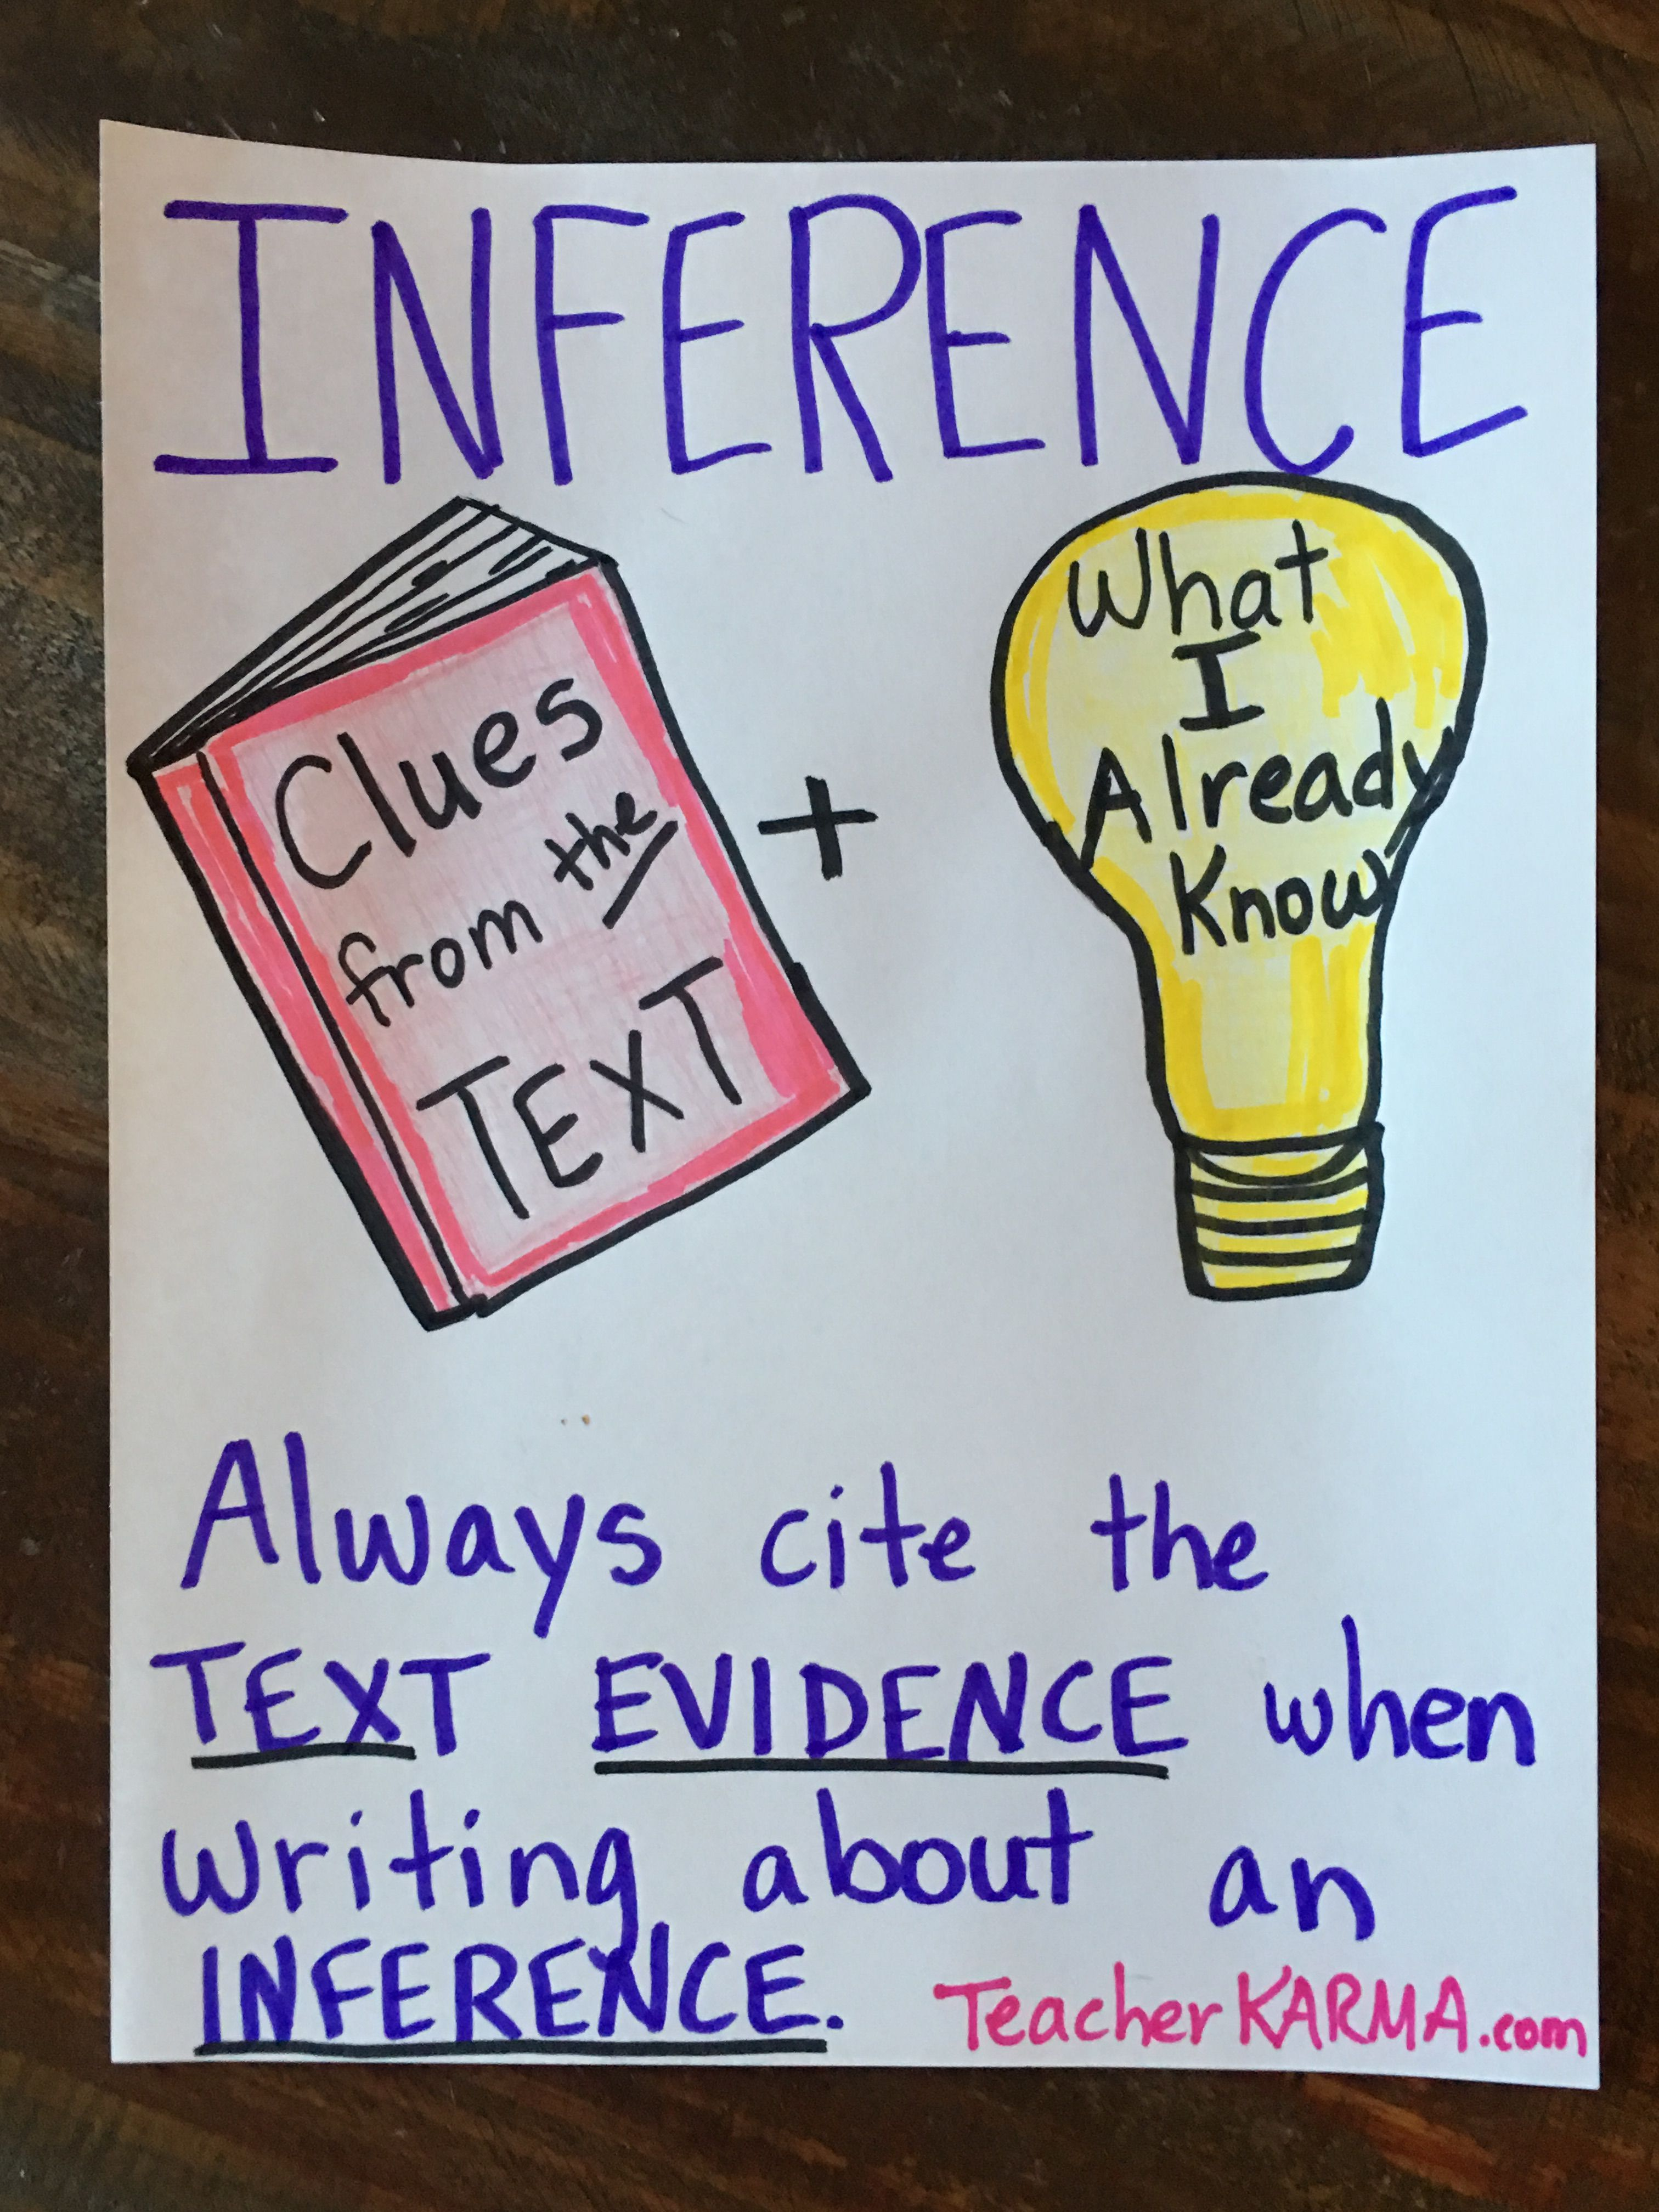 Inference anchor chart clues from the text what  already know   also rh pinterest